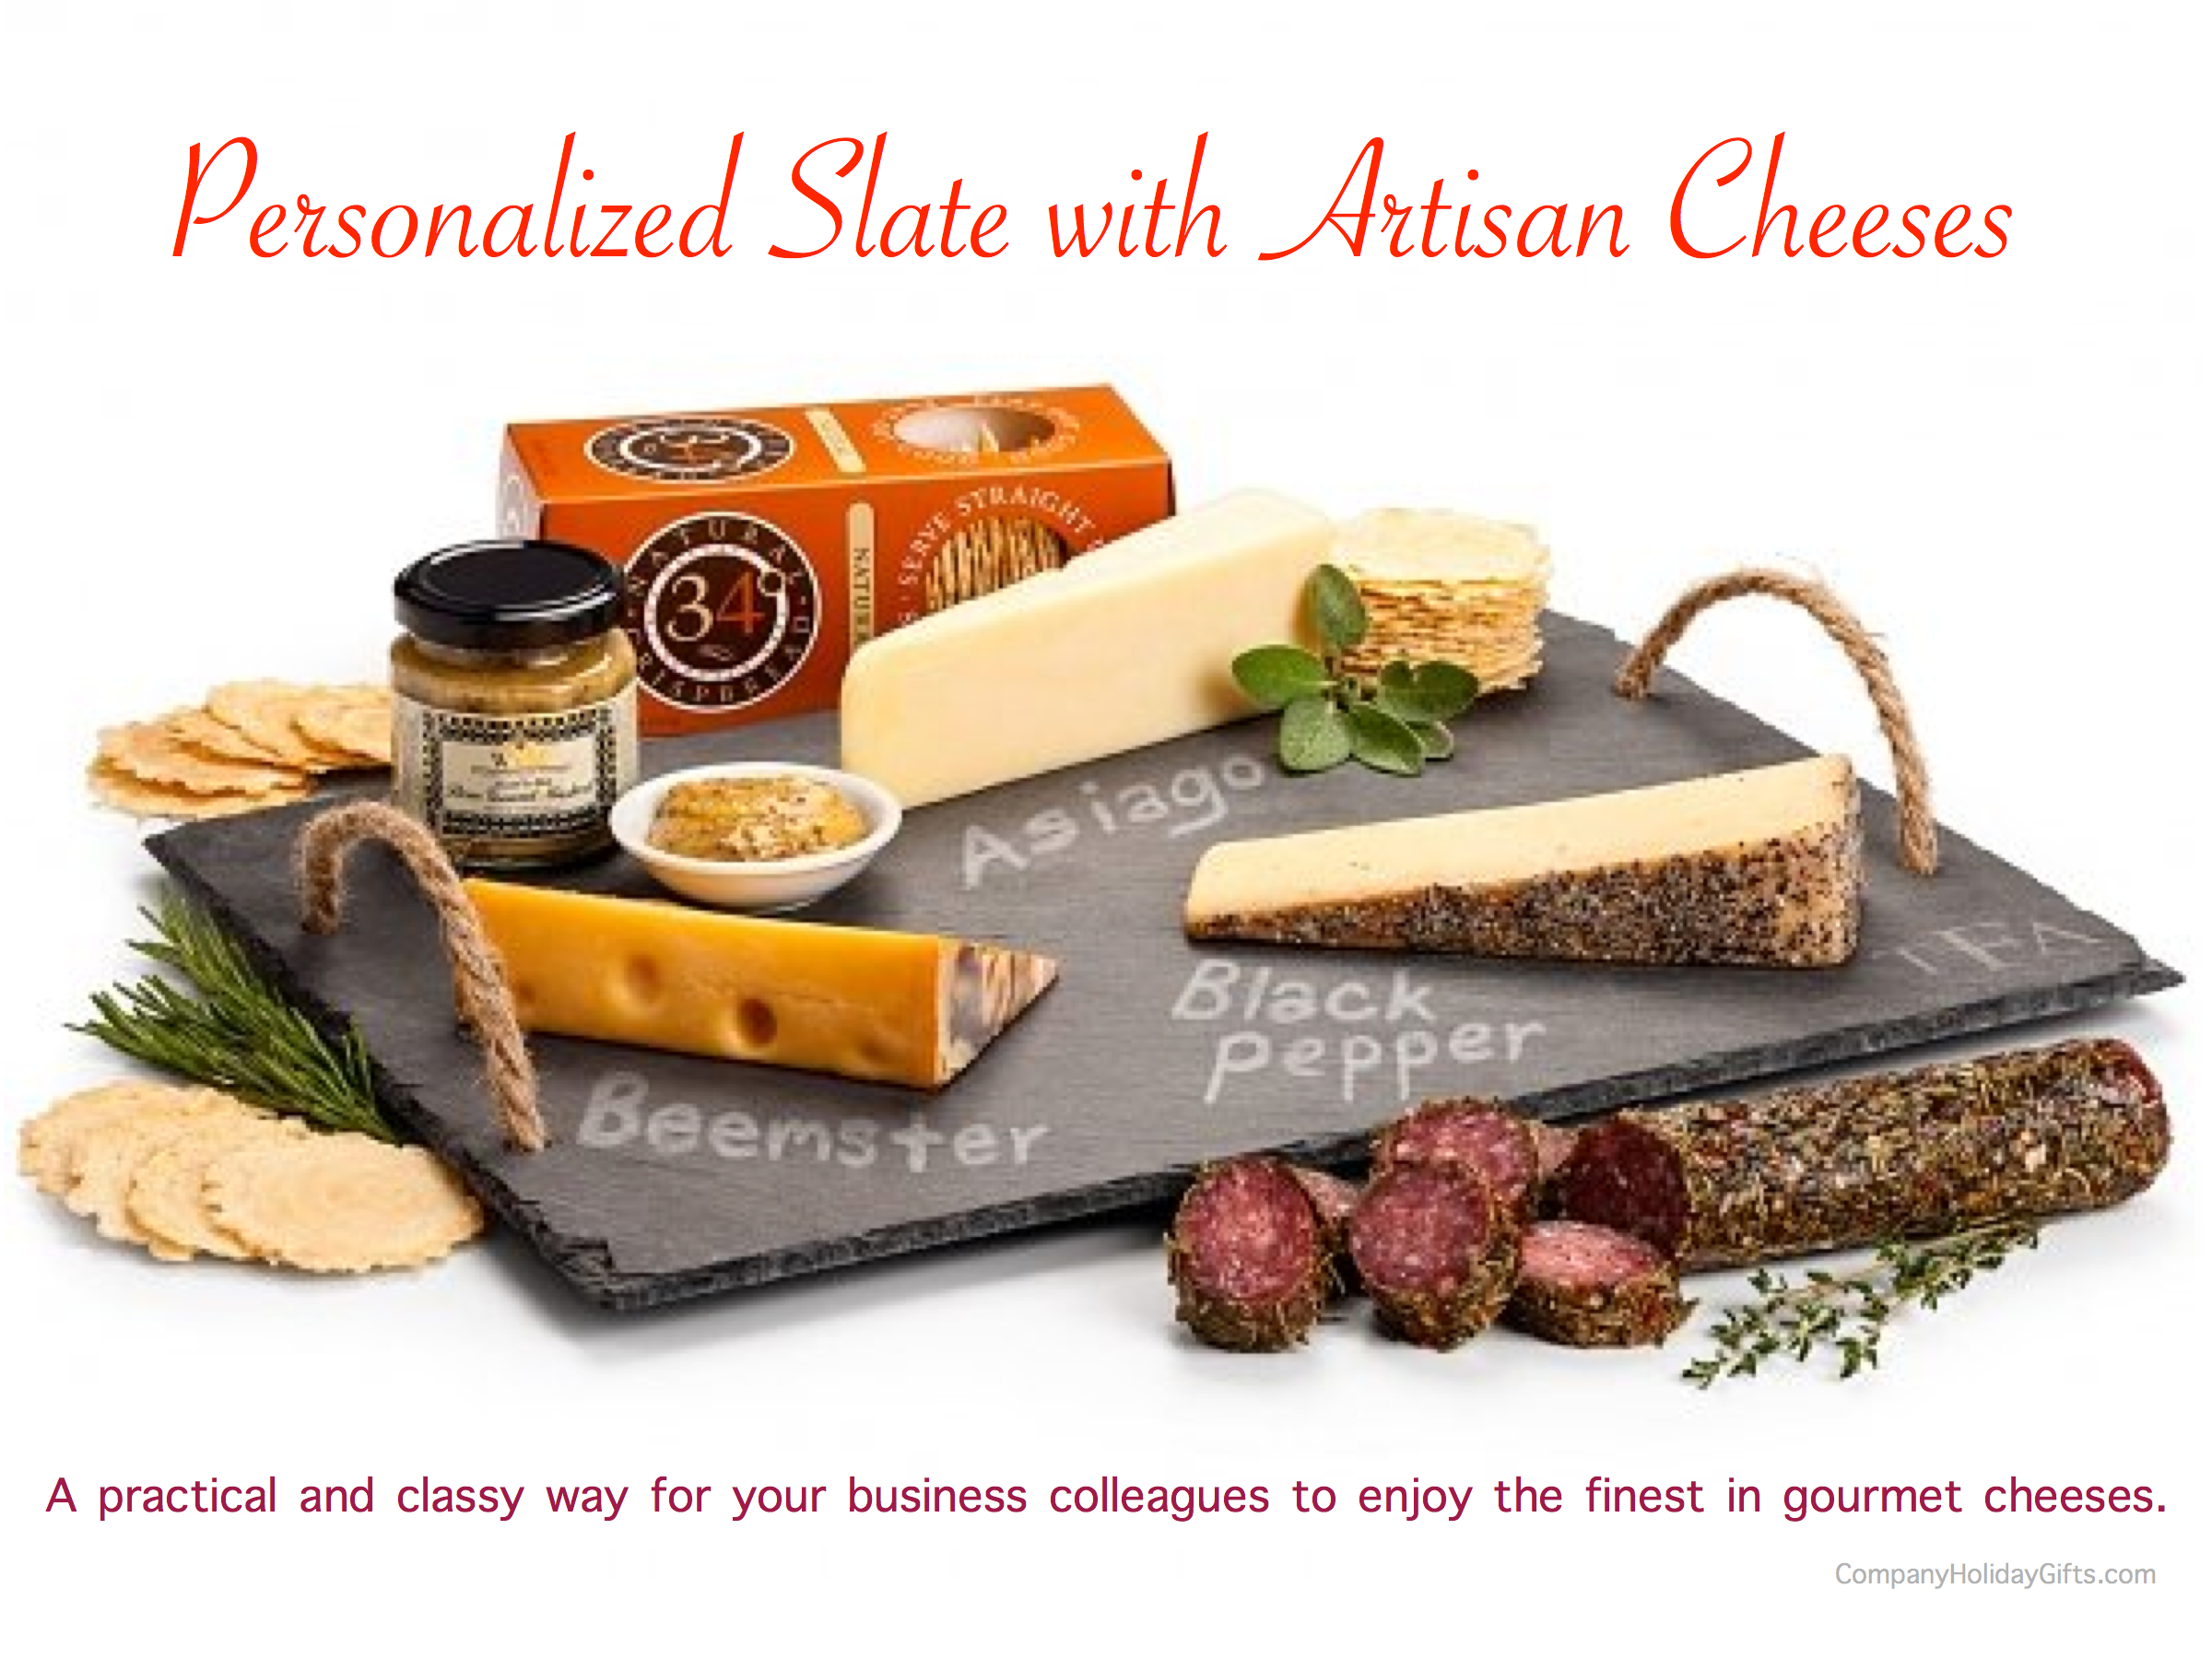 Personalized Slate with Artisan Cheeses, 20 Best Realtor Holiday Gift Ideas Under $100.00